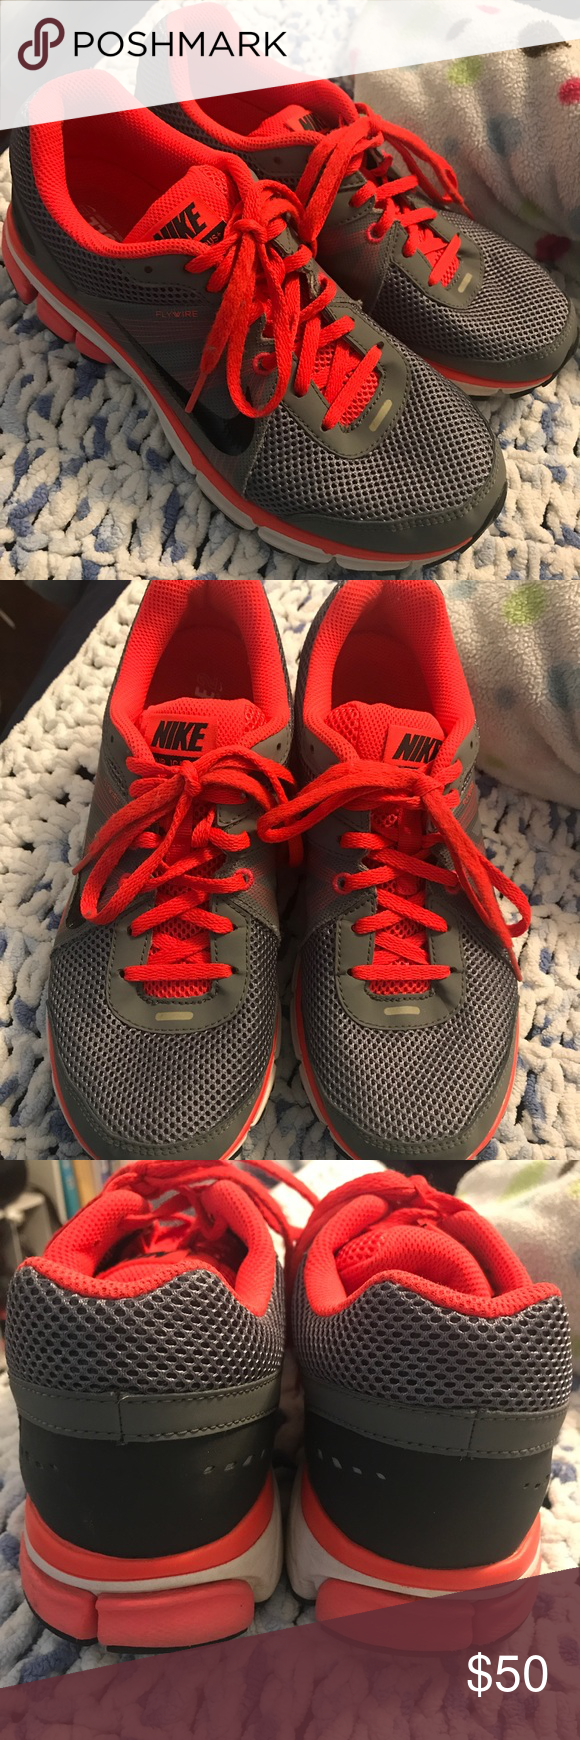 15da466ccef Nike air Icarus plus ladies running shoe Worn a couple times Great ...